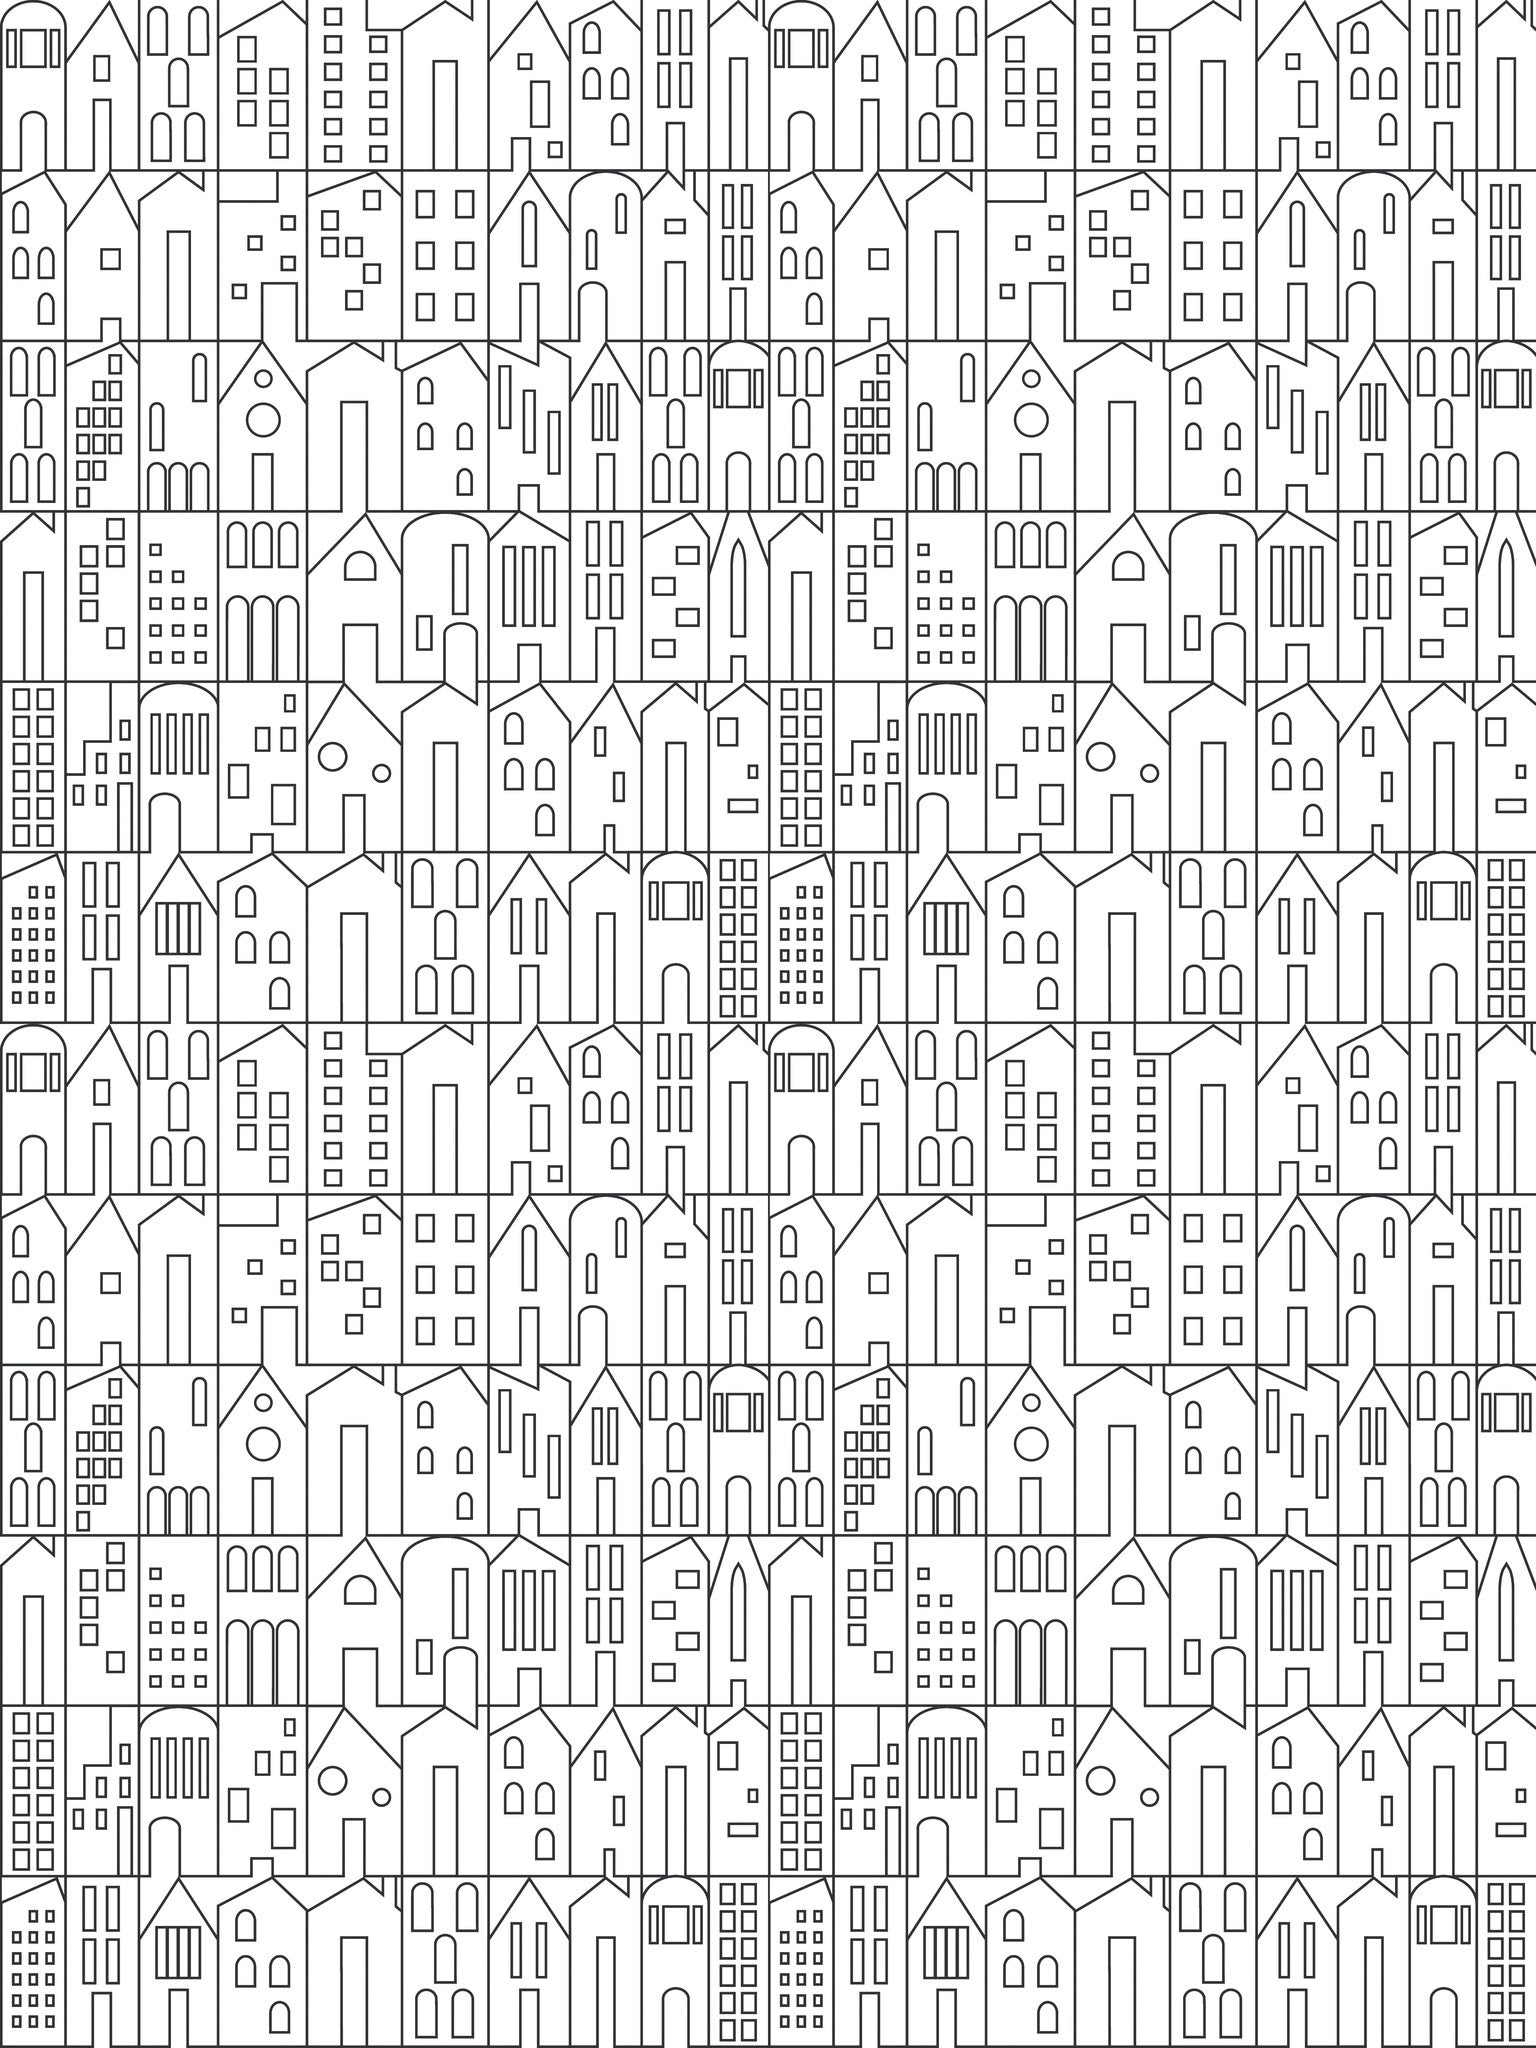 My House Wallpaper in Charcoal by Sissy Marley for Jill Malek